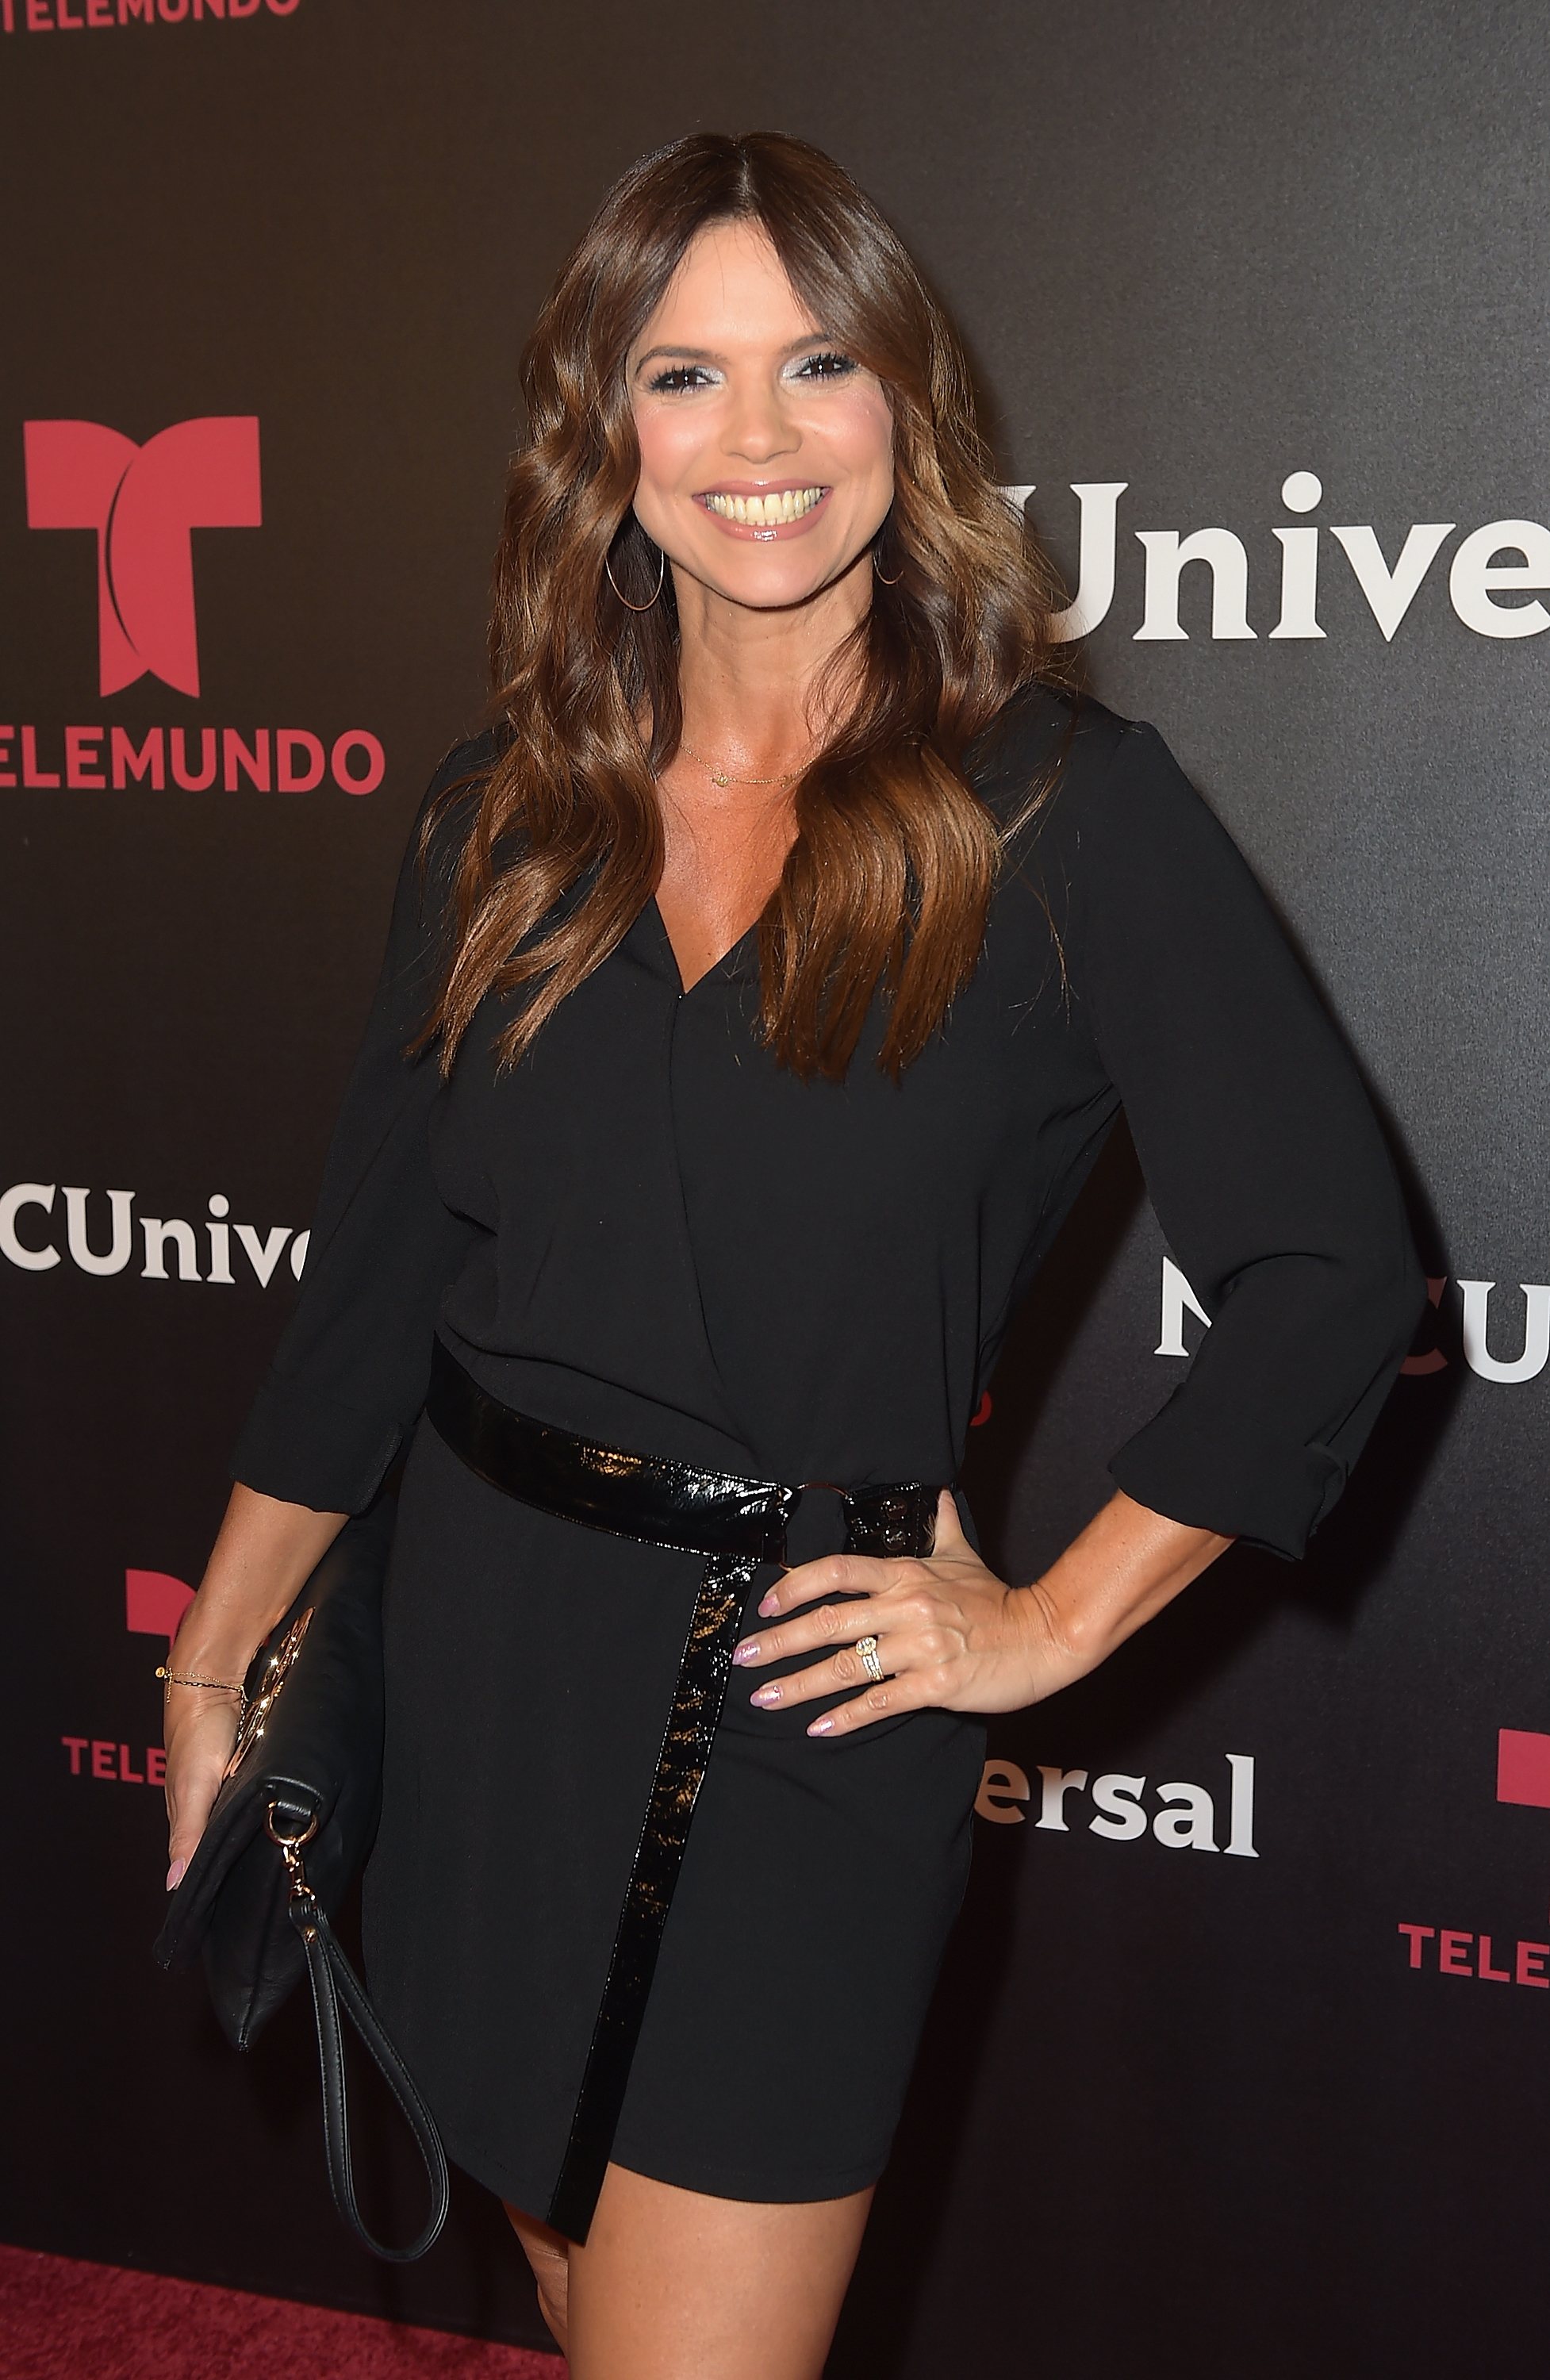 NBCUniversal International Offsite Event - Telemundo